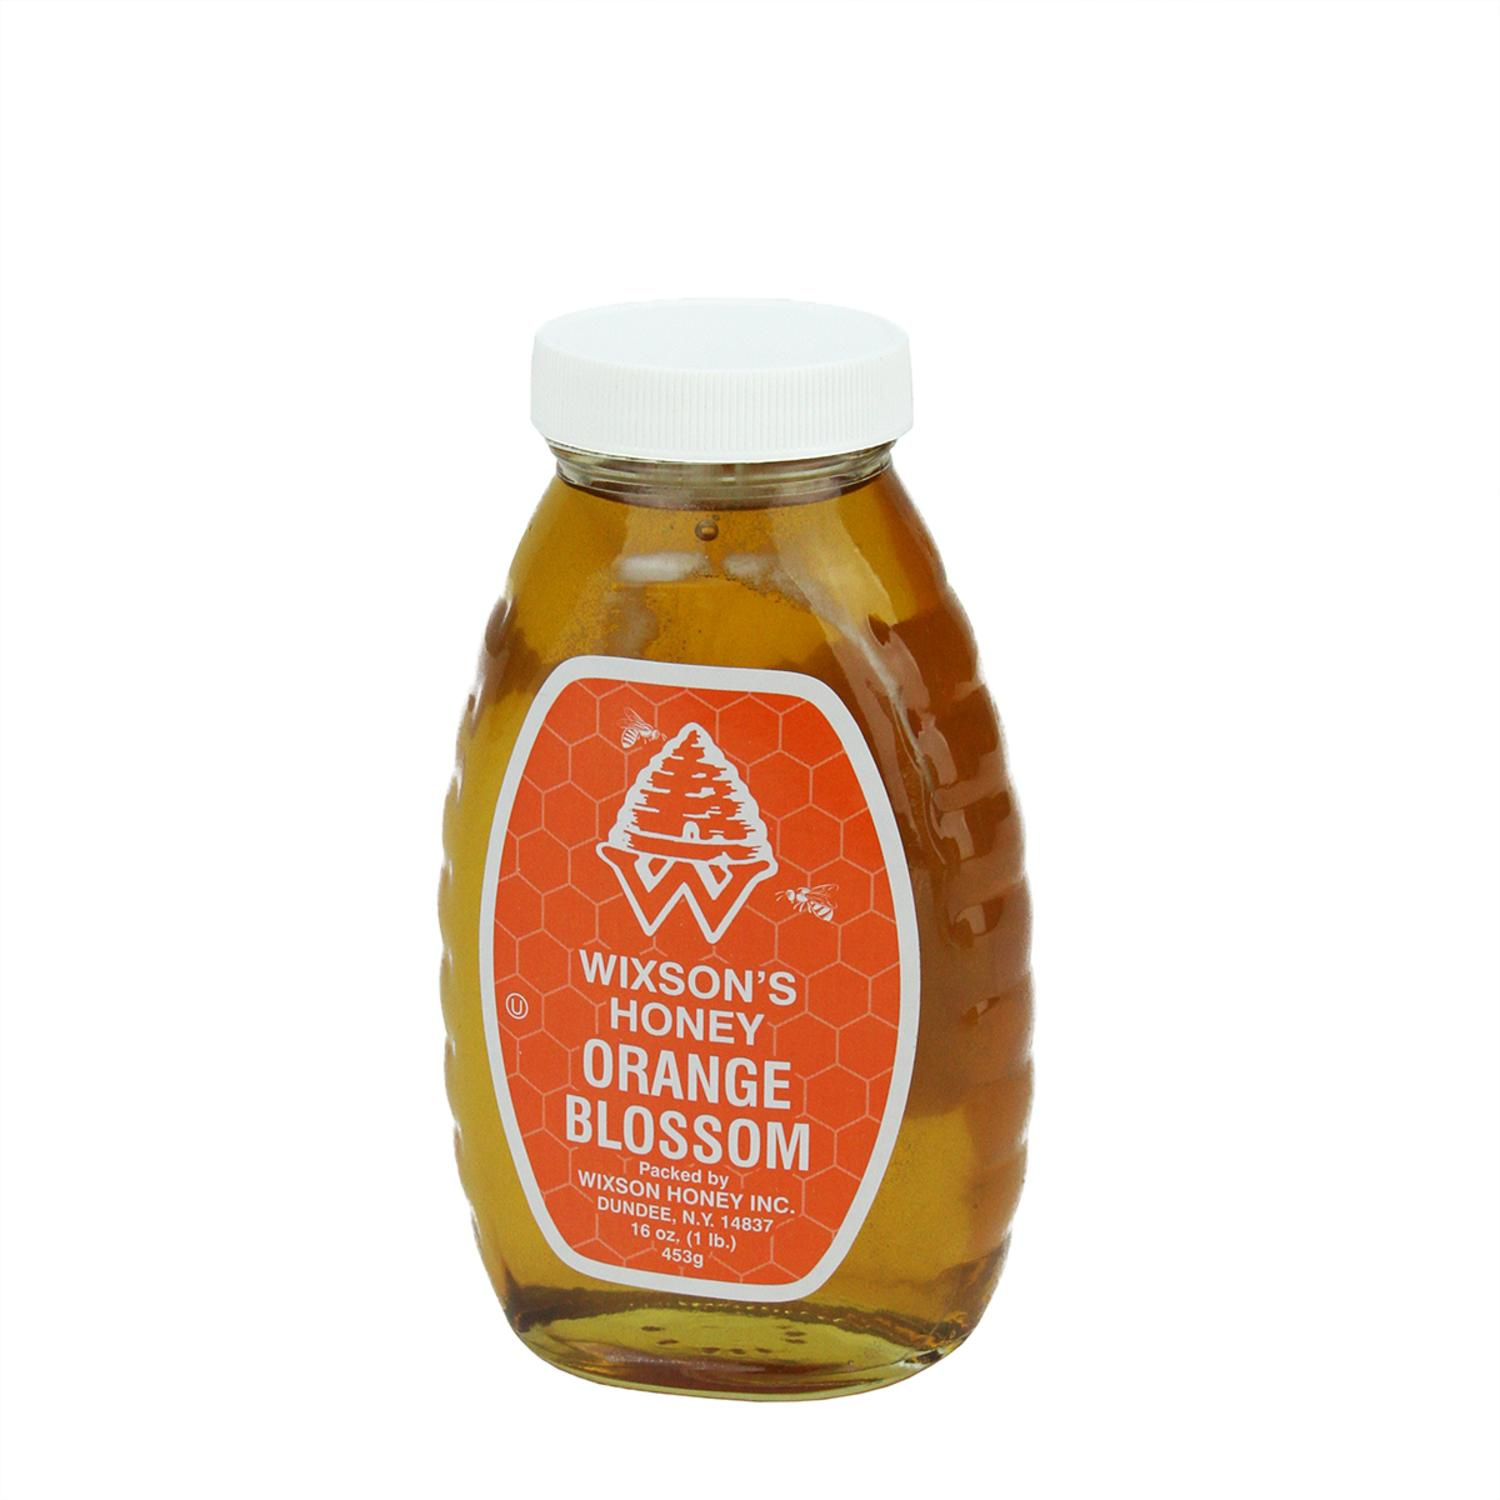 1 Pound of WNY's Wixson's Orange Blosson Honey in Classic Glass Jar